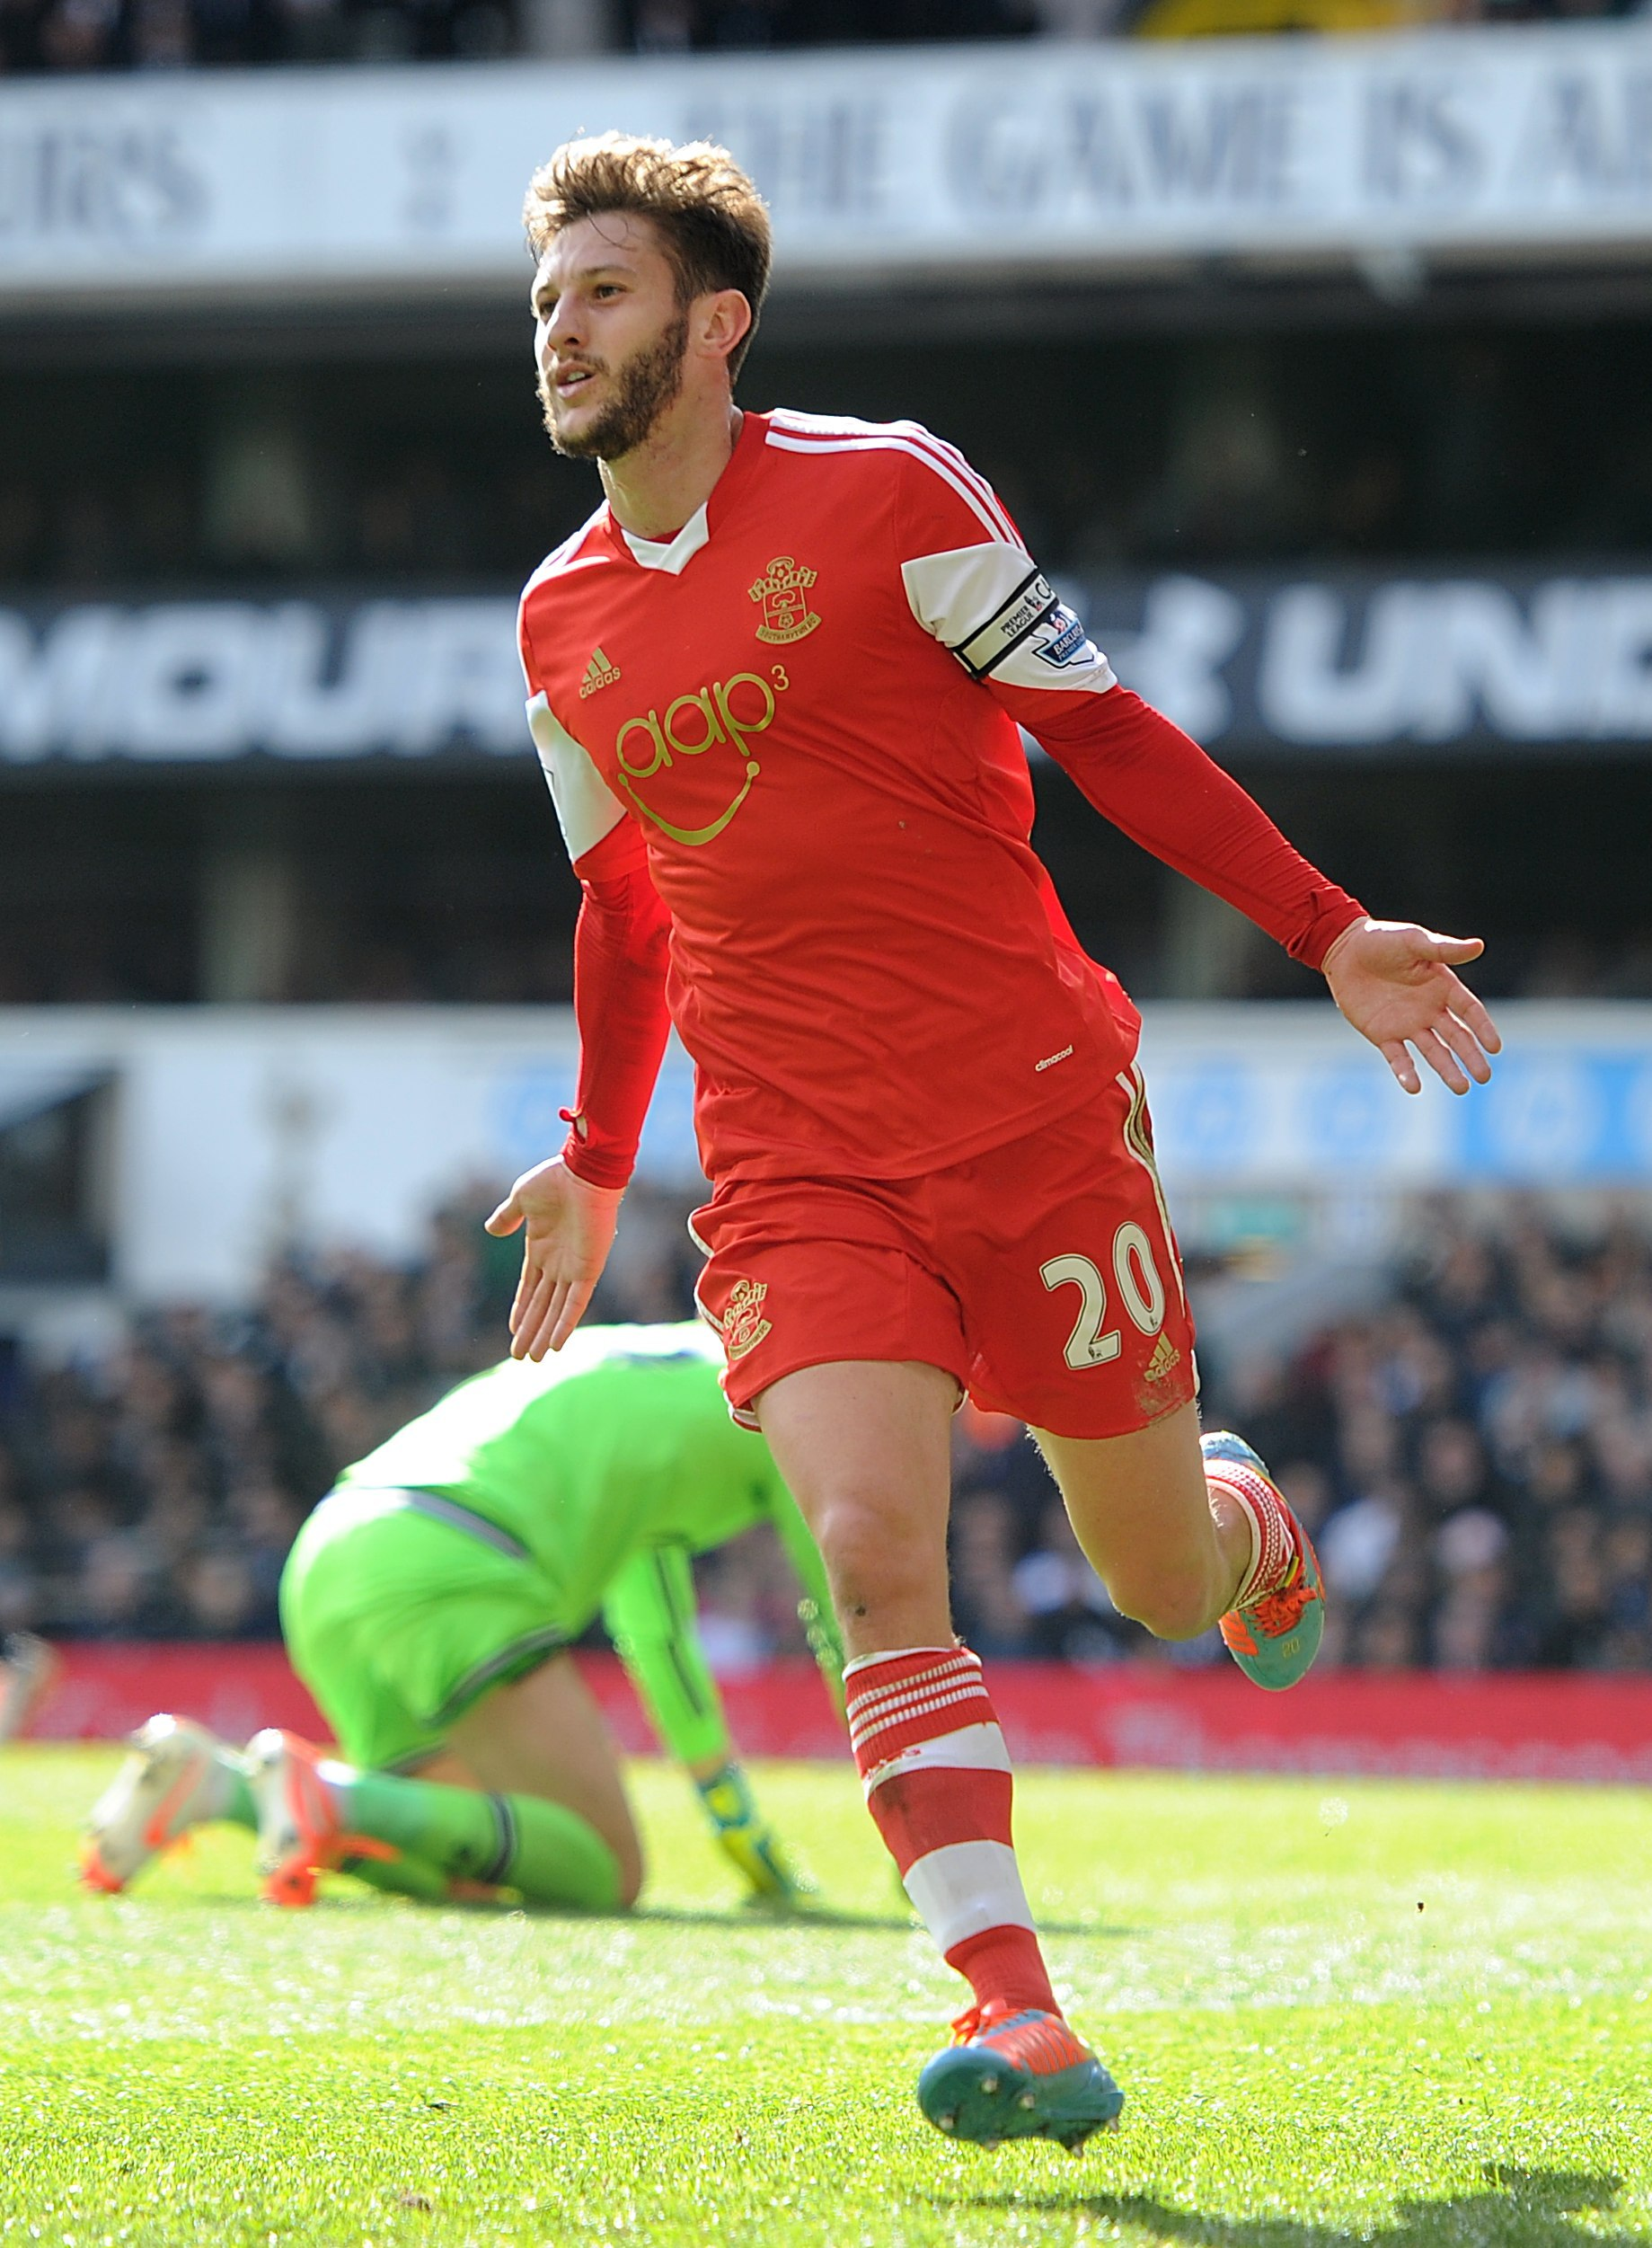 Adam Lallana has made the England squad in the 2014 World Cup sticker album